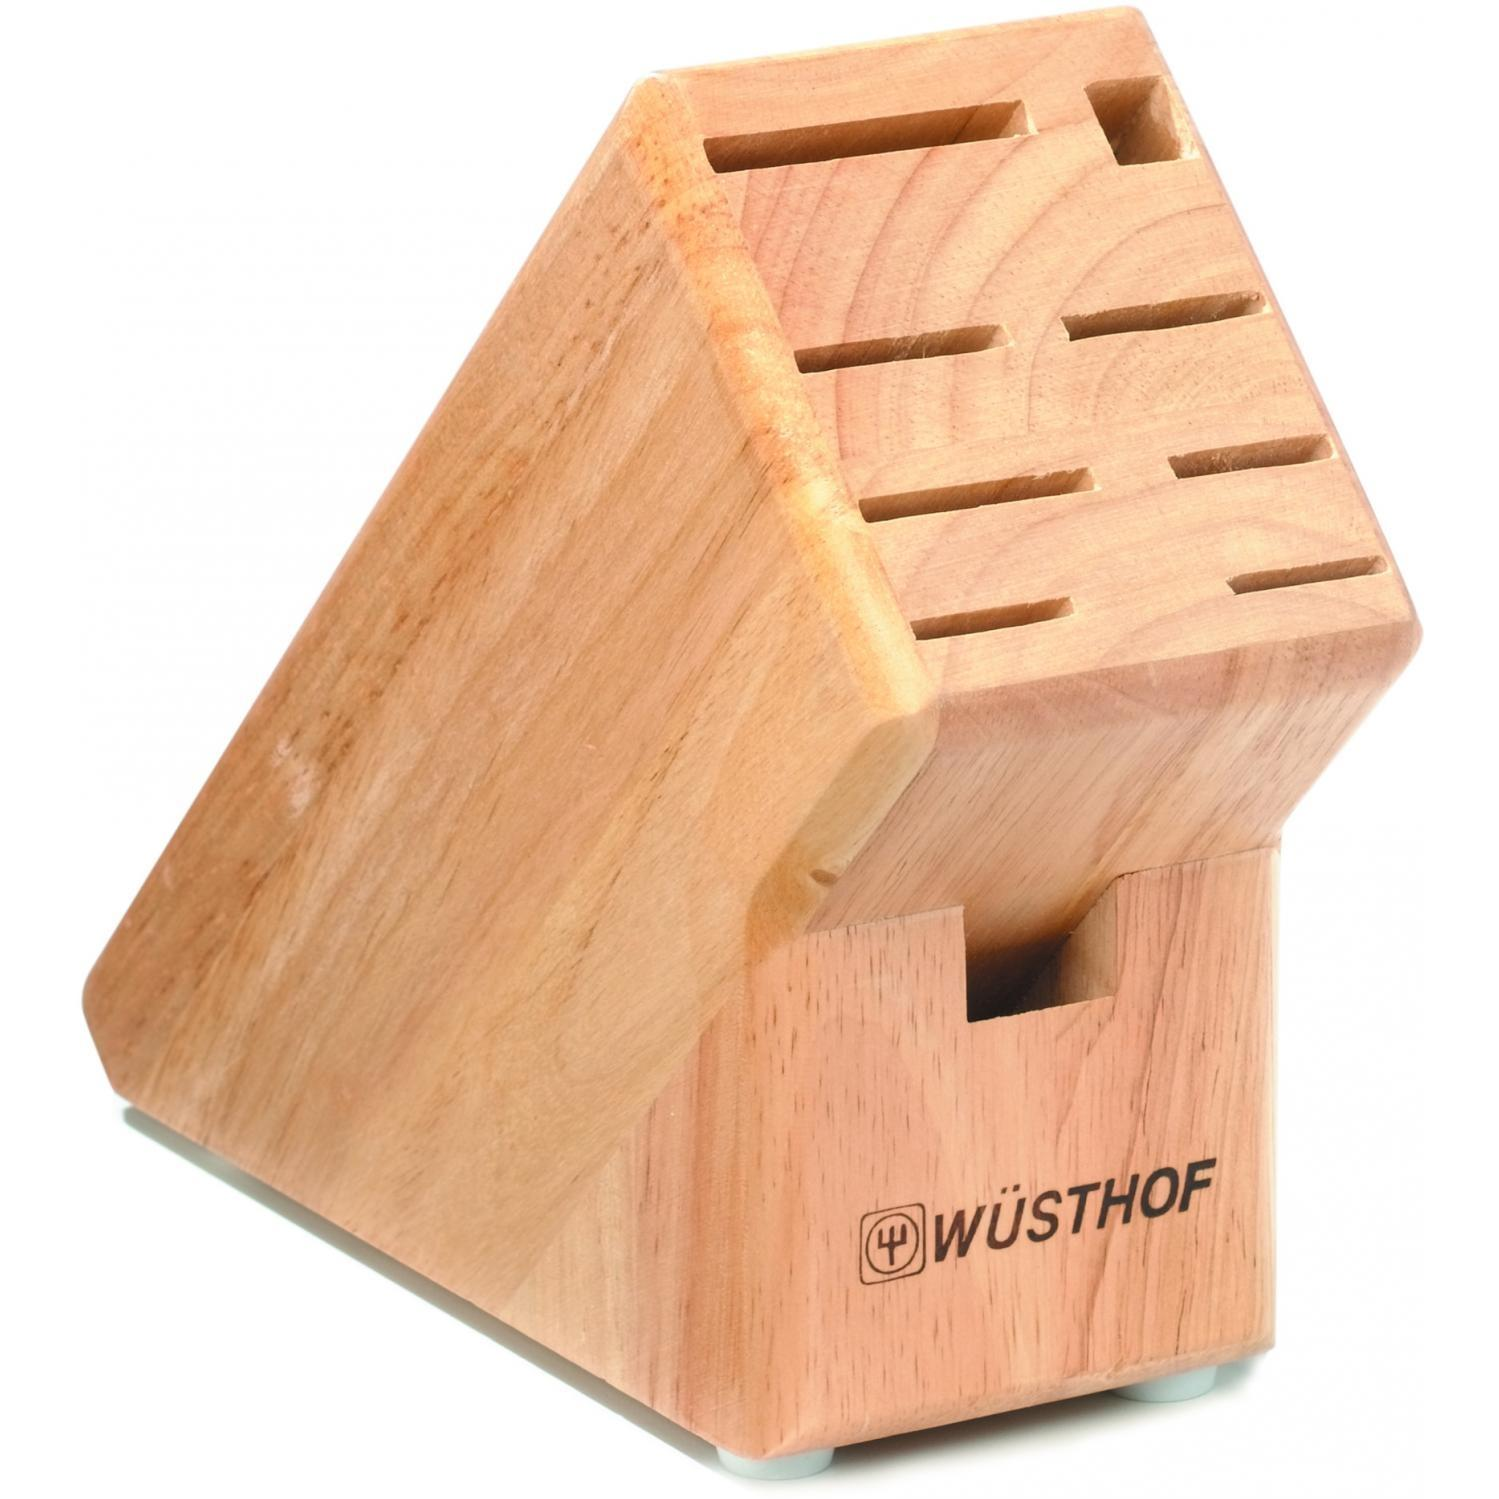 Picture of Wusthof 9-Slot Knife Block - Natural